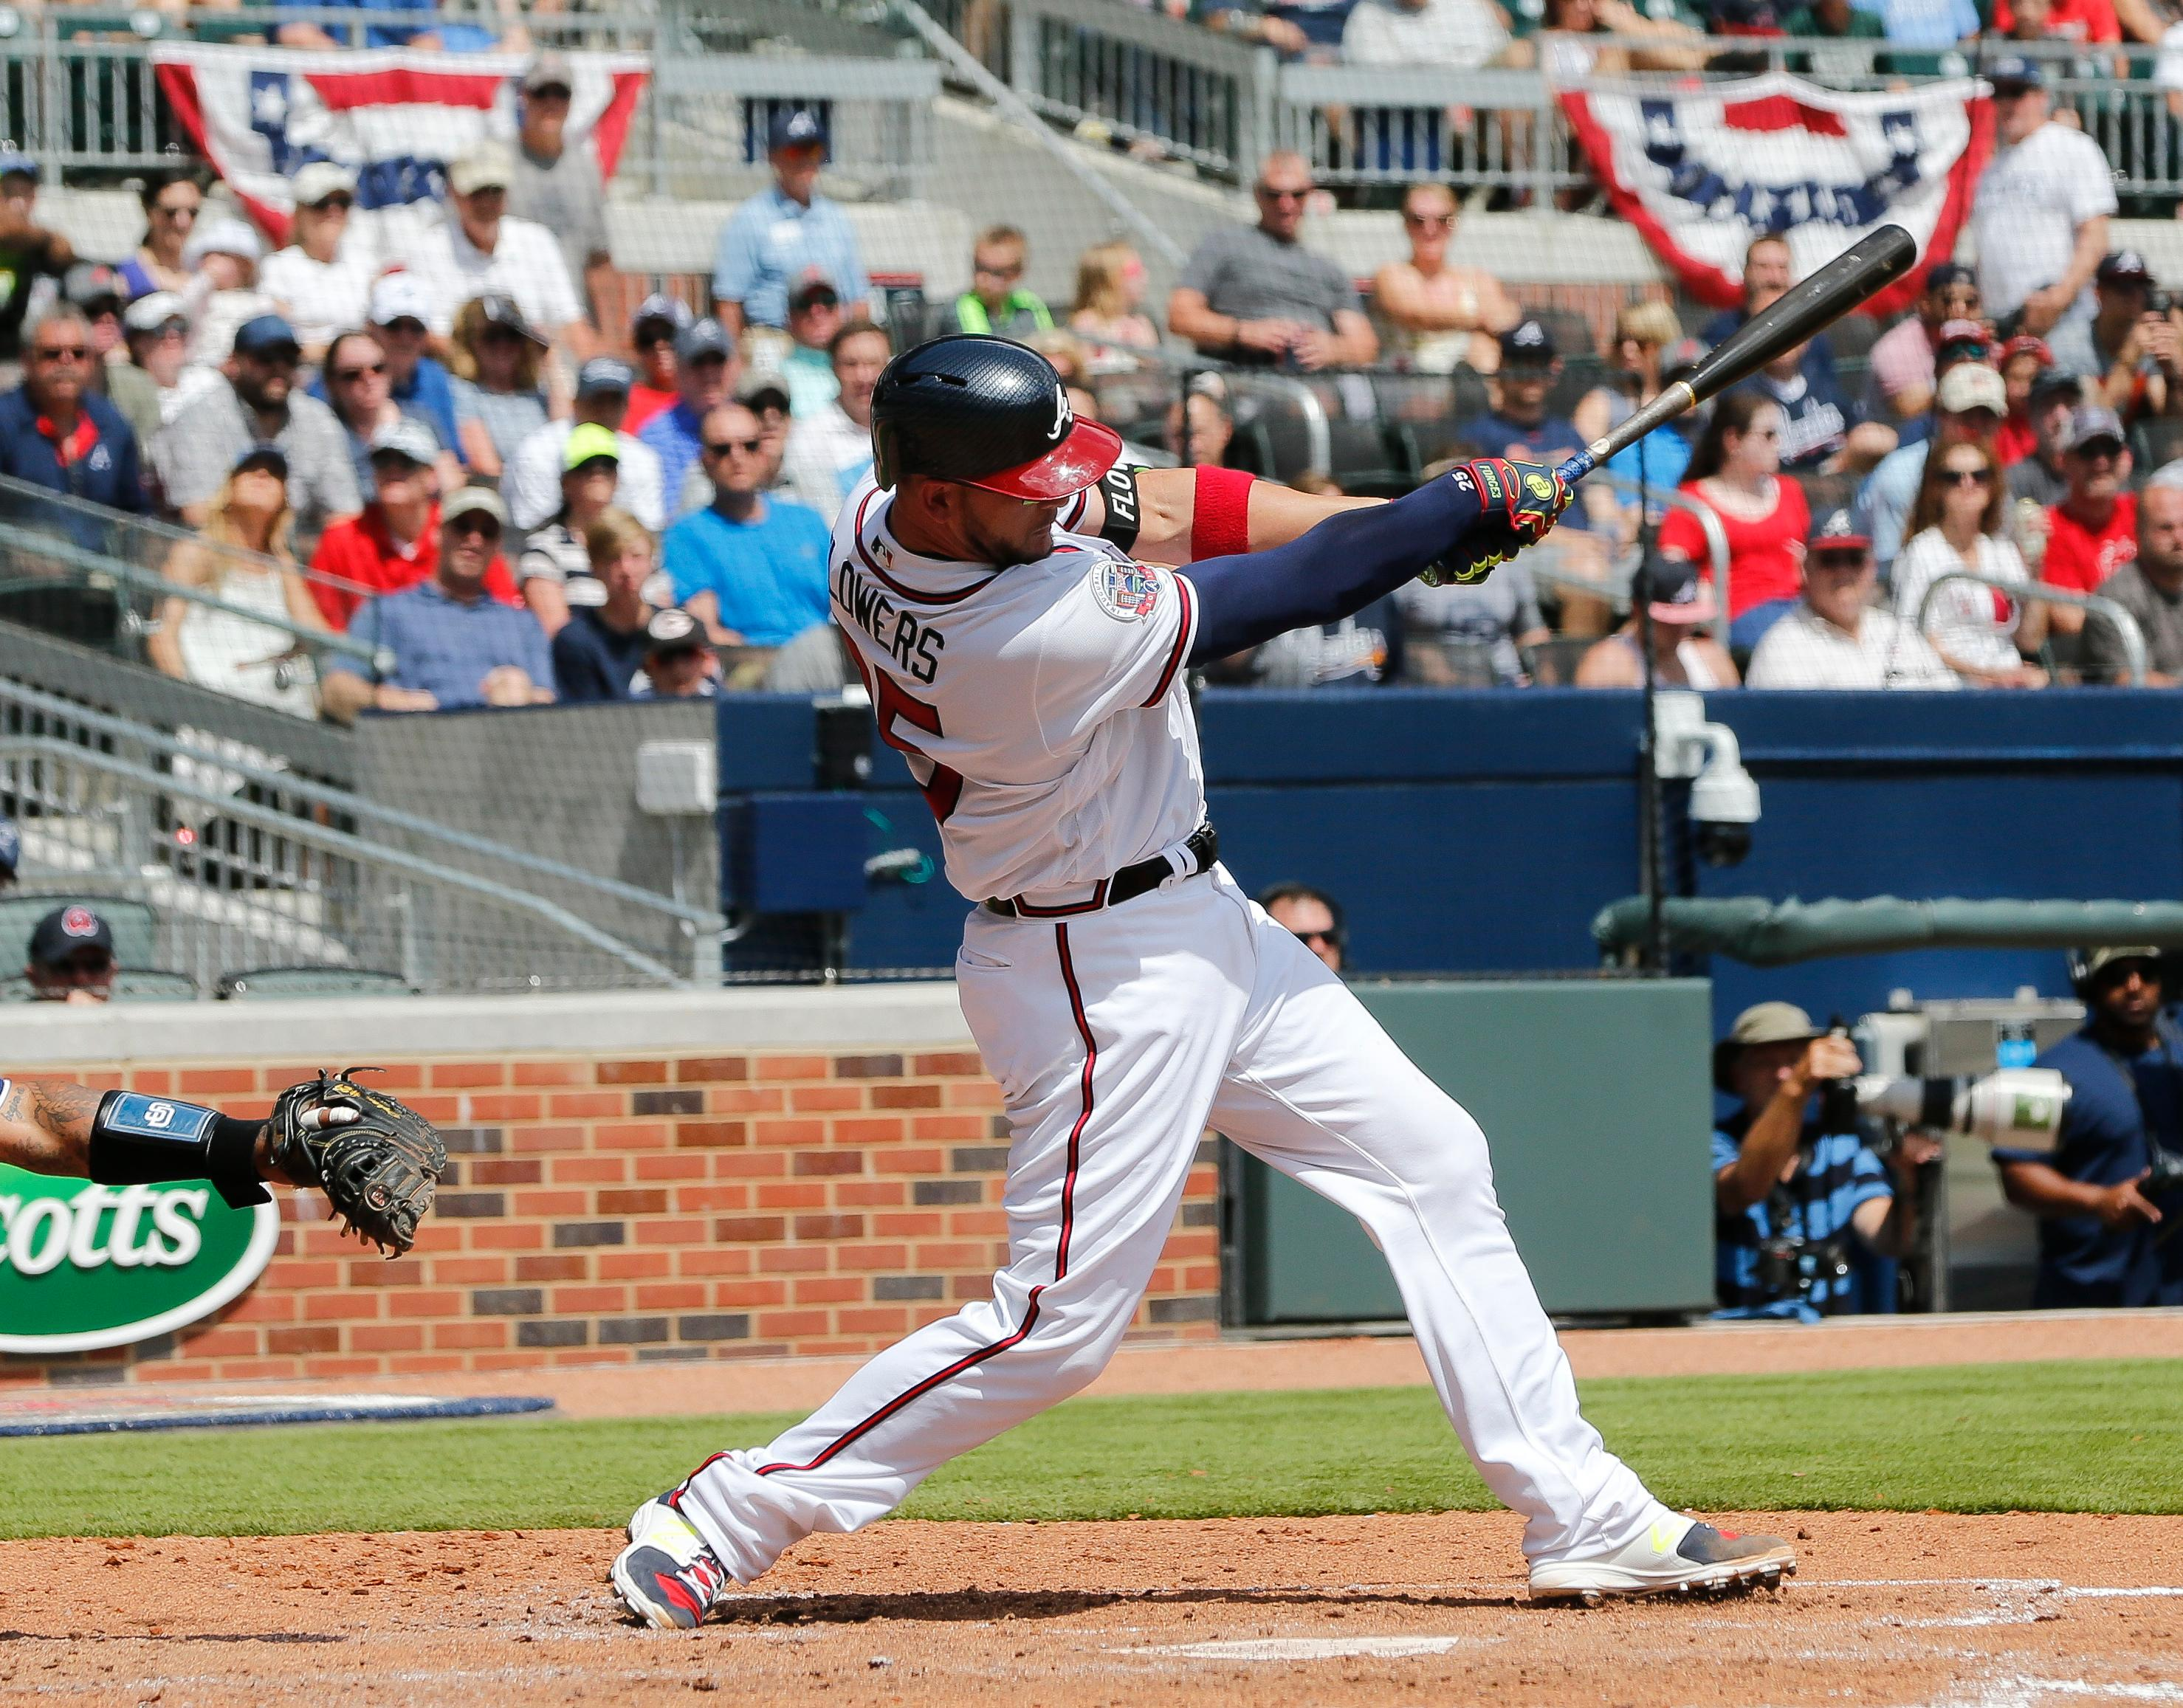 Atlanta Braves catcher Tyler Flowers follows through on a two-run single in the fifth inning of a baseball game against the San Diego Padres Sunday, April 16, 2017, in Atlanta. (AP Photo/John Bazemore)